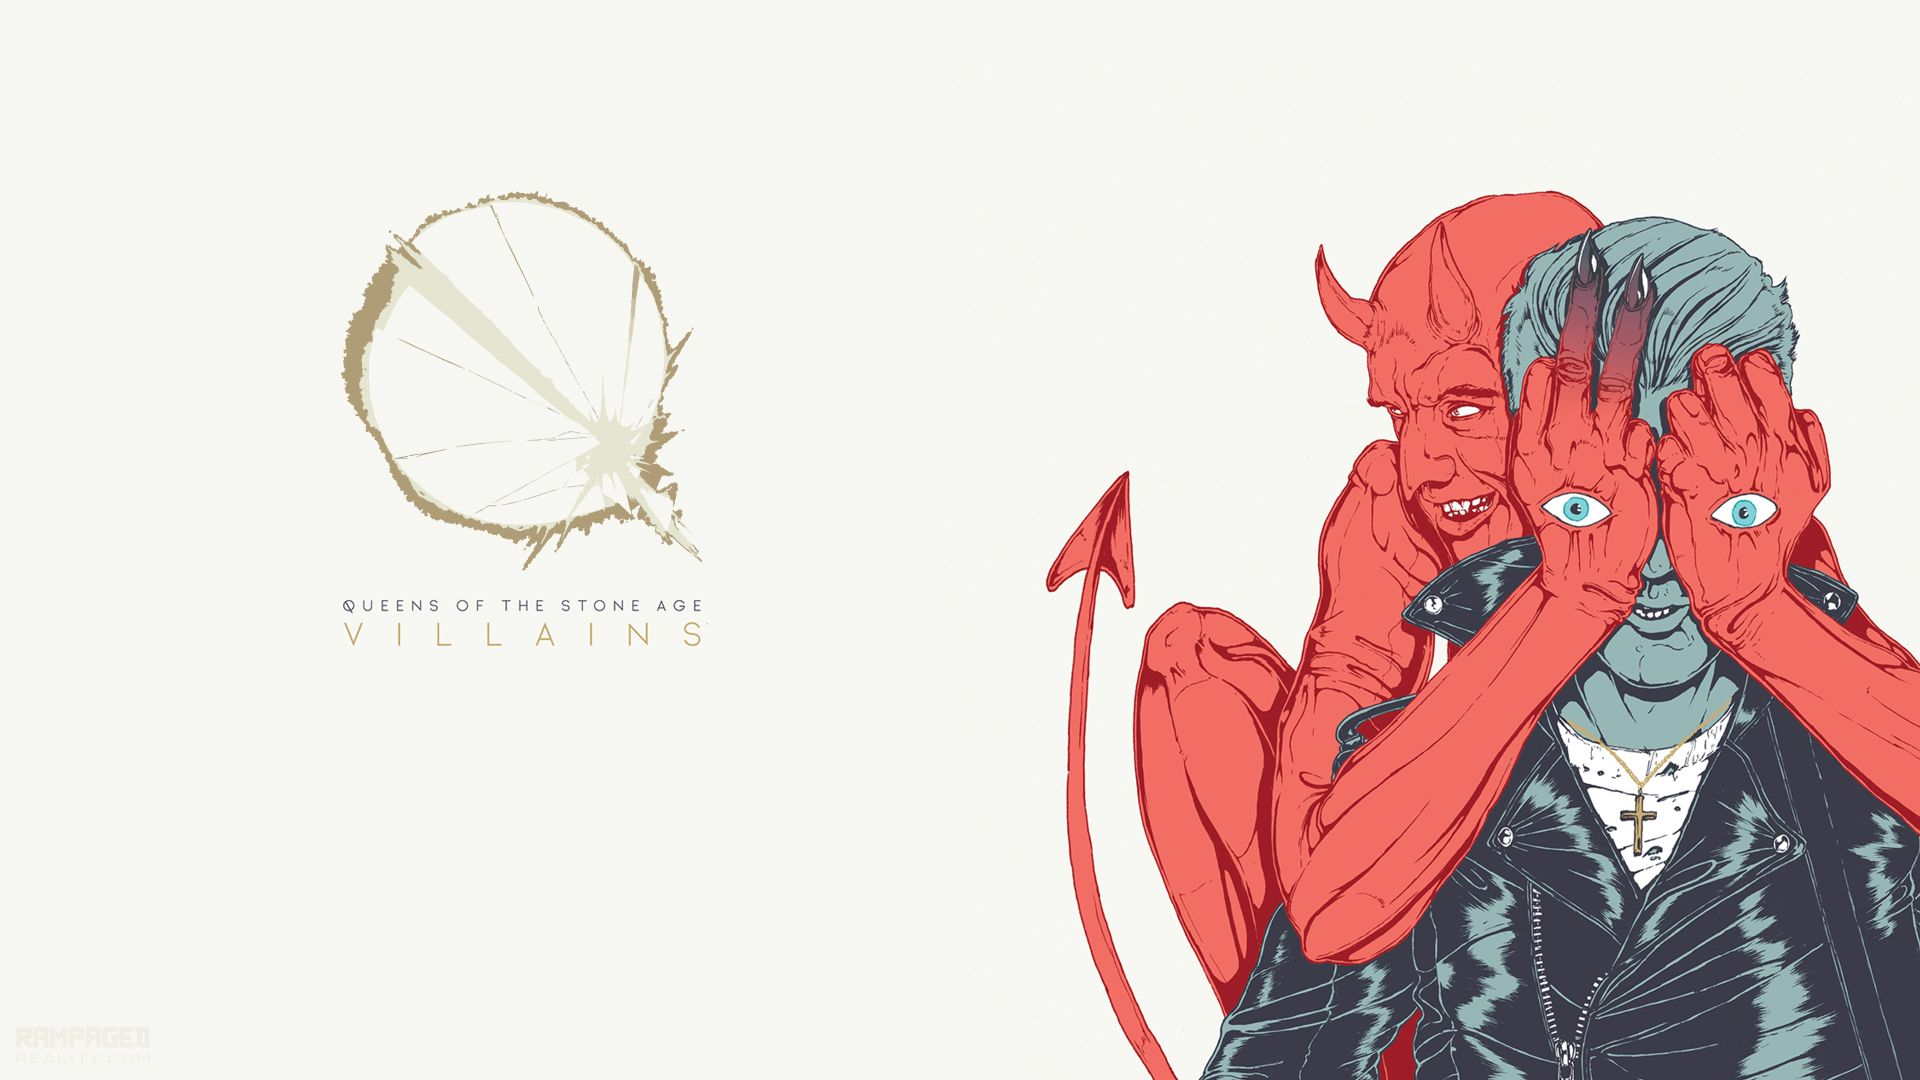 Queens Of The Stone Age Villains Wallpapers 1920x1080